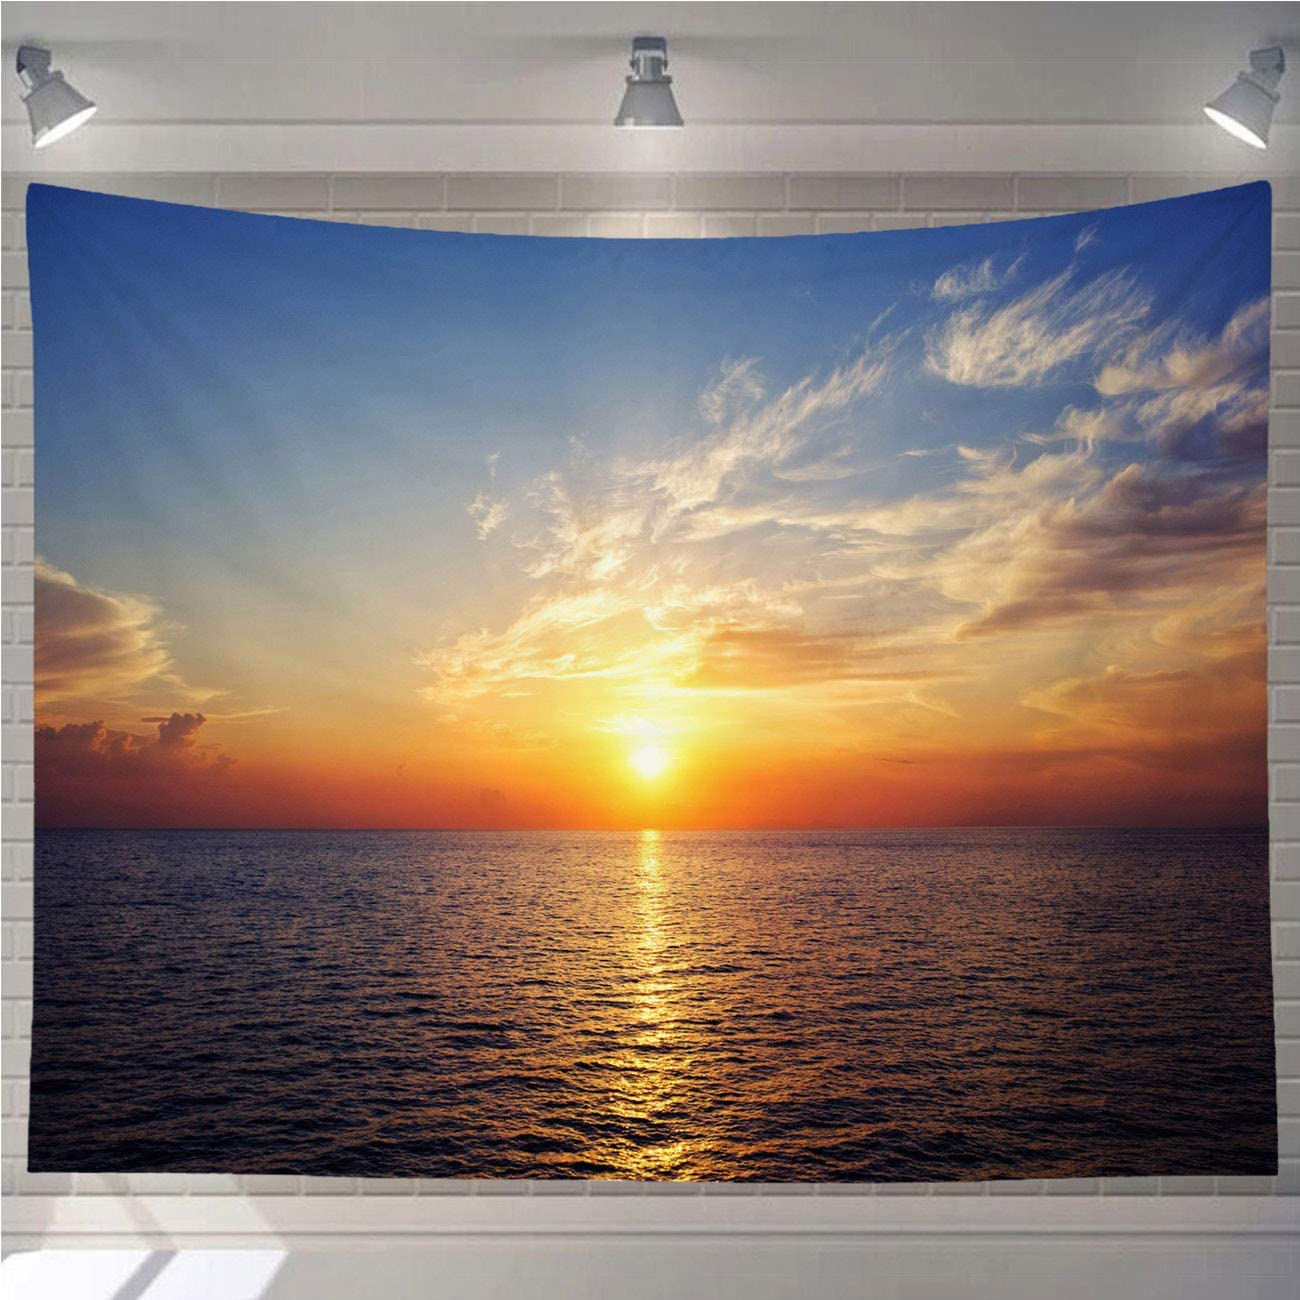 OTTOSUN Sunset Tapestry Wall Hanging,Sunset Sun Afterglow Morgenrot Sky Water Sea Ocean Mirroring Romance,Nature Home Decorations for Living Room Bedroom Dining Room Dorm,60x40 in